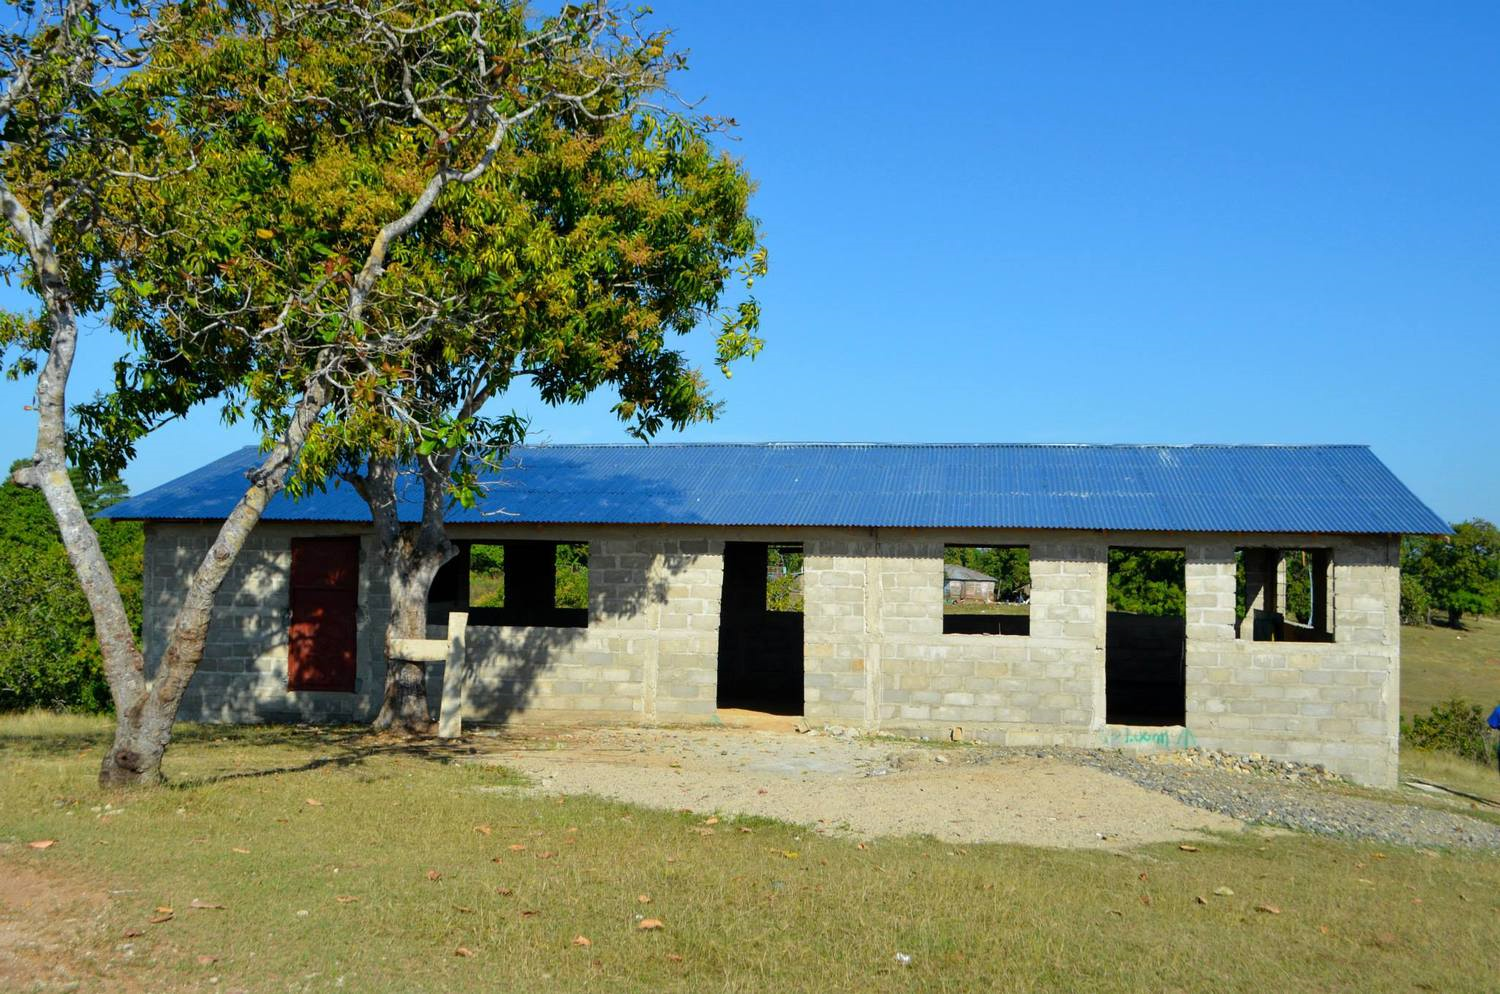 Building at Baja. Constructed Winter 2014. Ope for holding worship services.